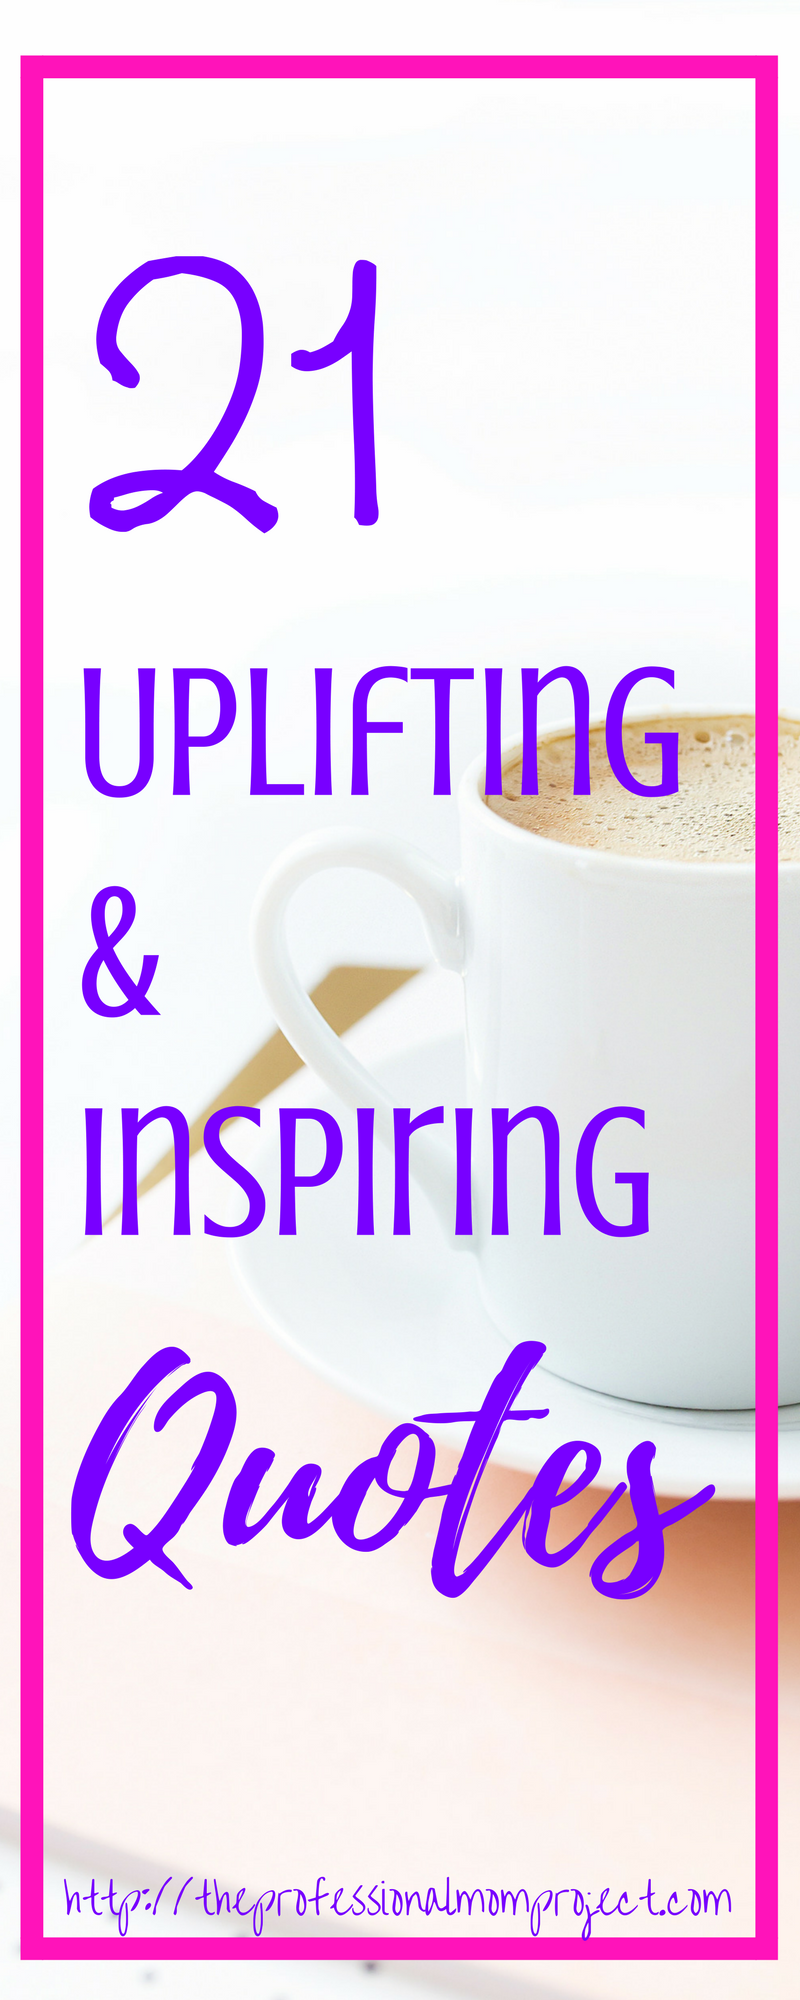 Uplifting Quotes 21 Uplifting Quotes To Improve Your Day  The Professional Mom Project